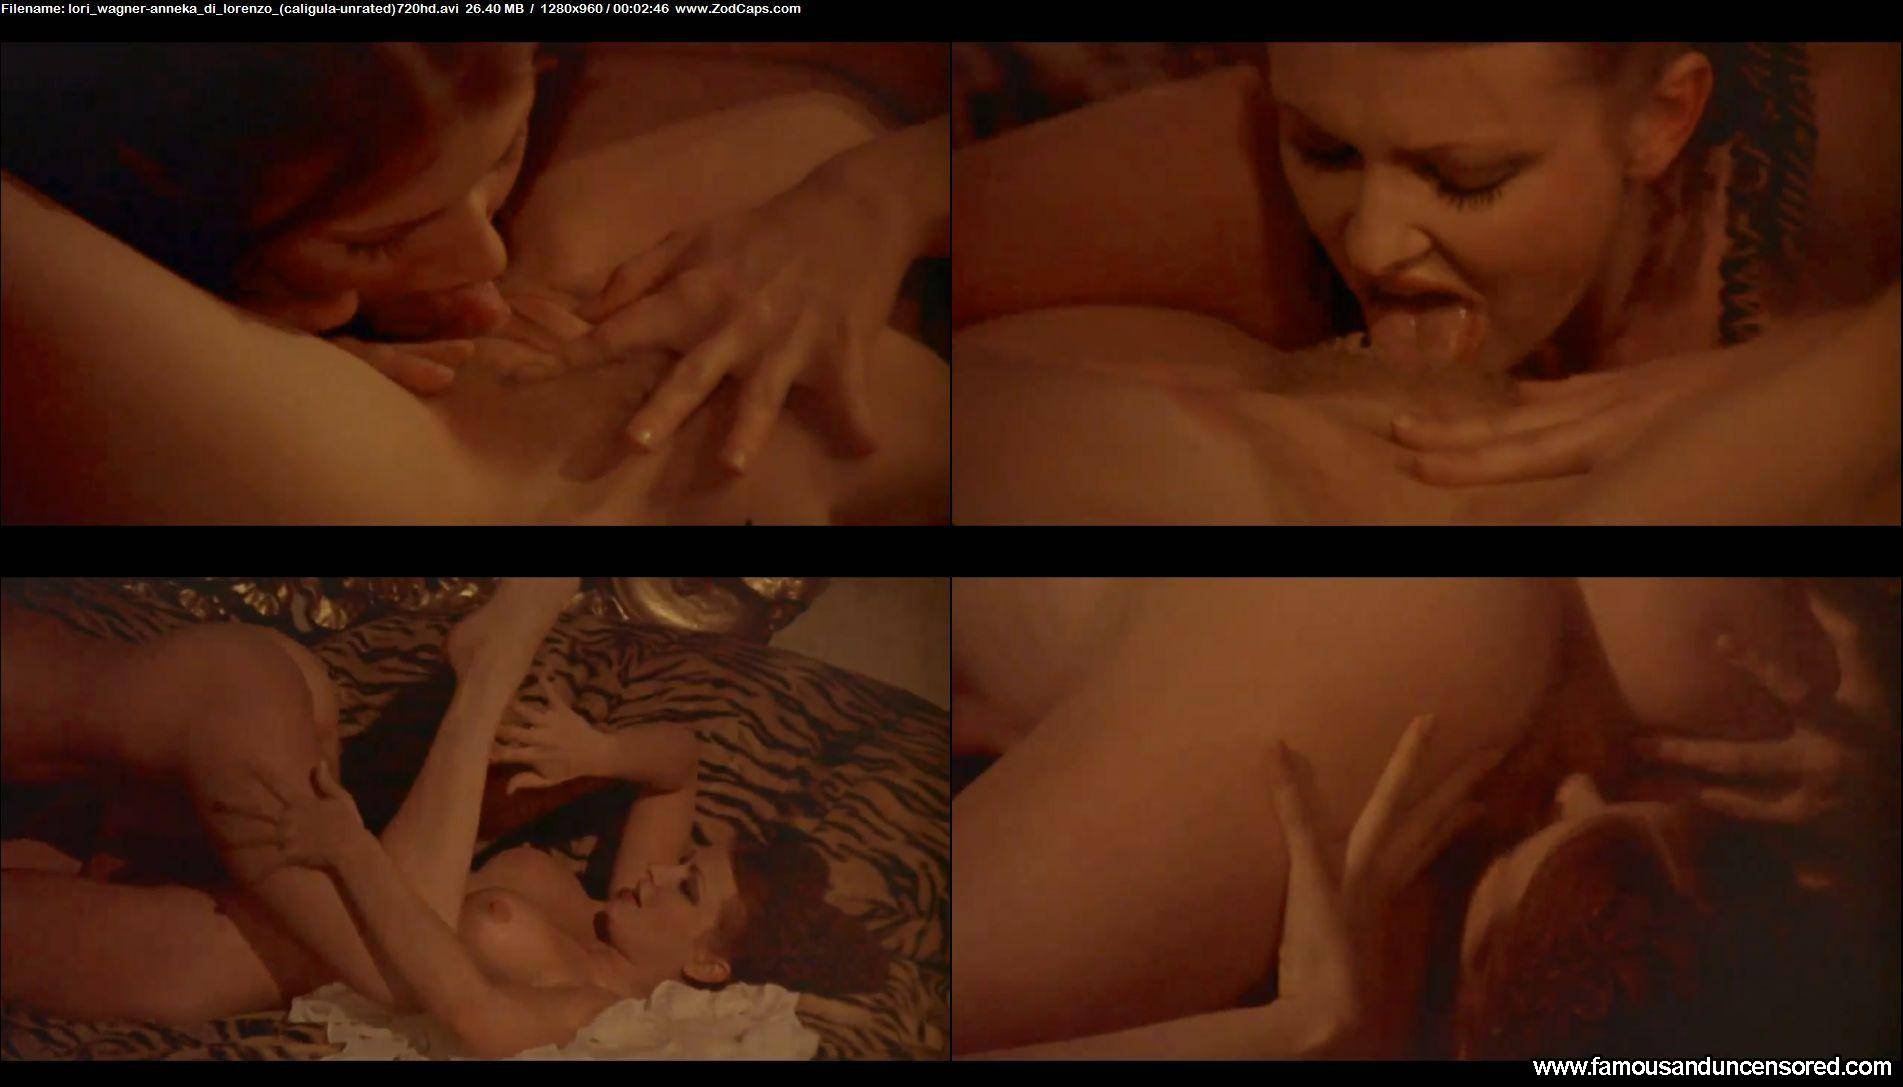 Dirty Unedited orgy scene from eyes wide shut very sexy